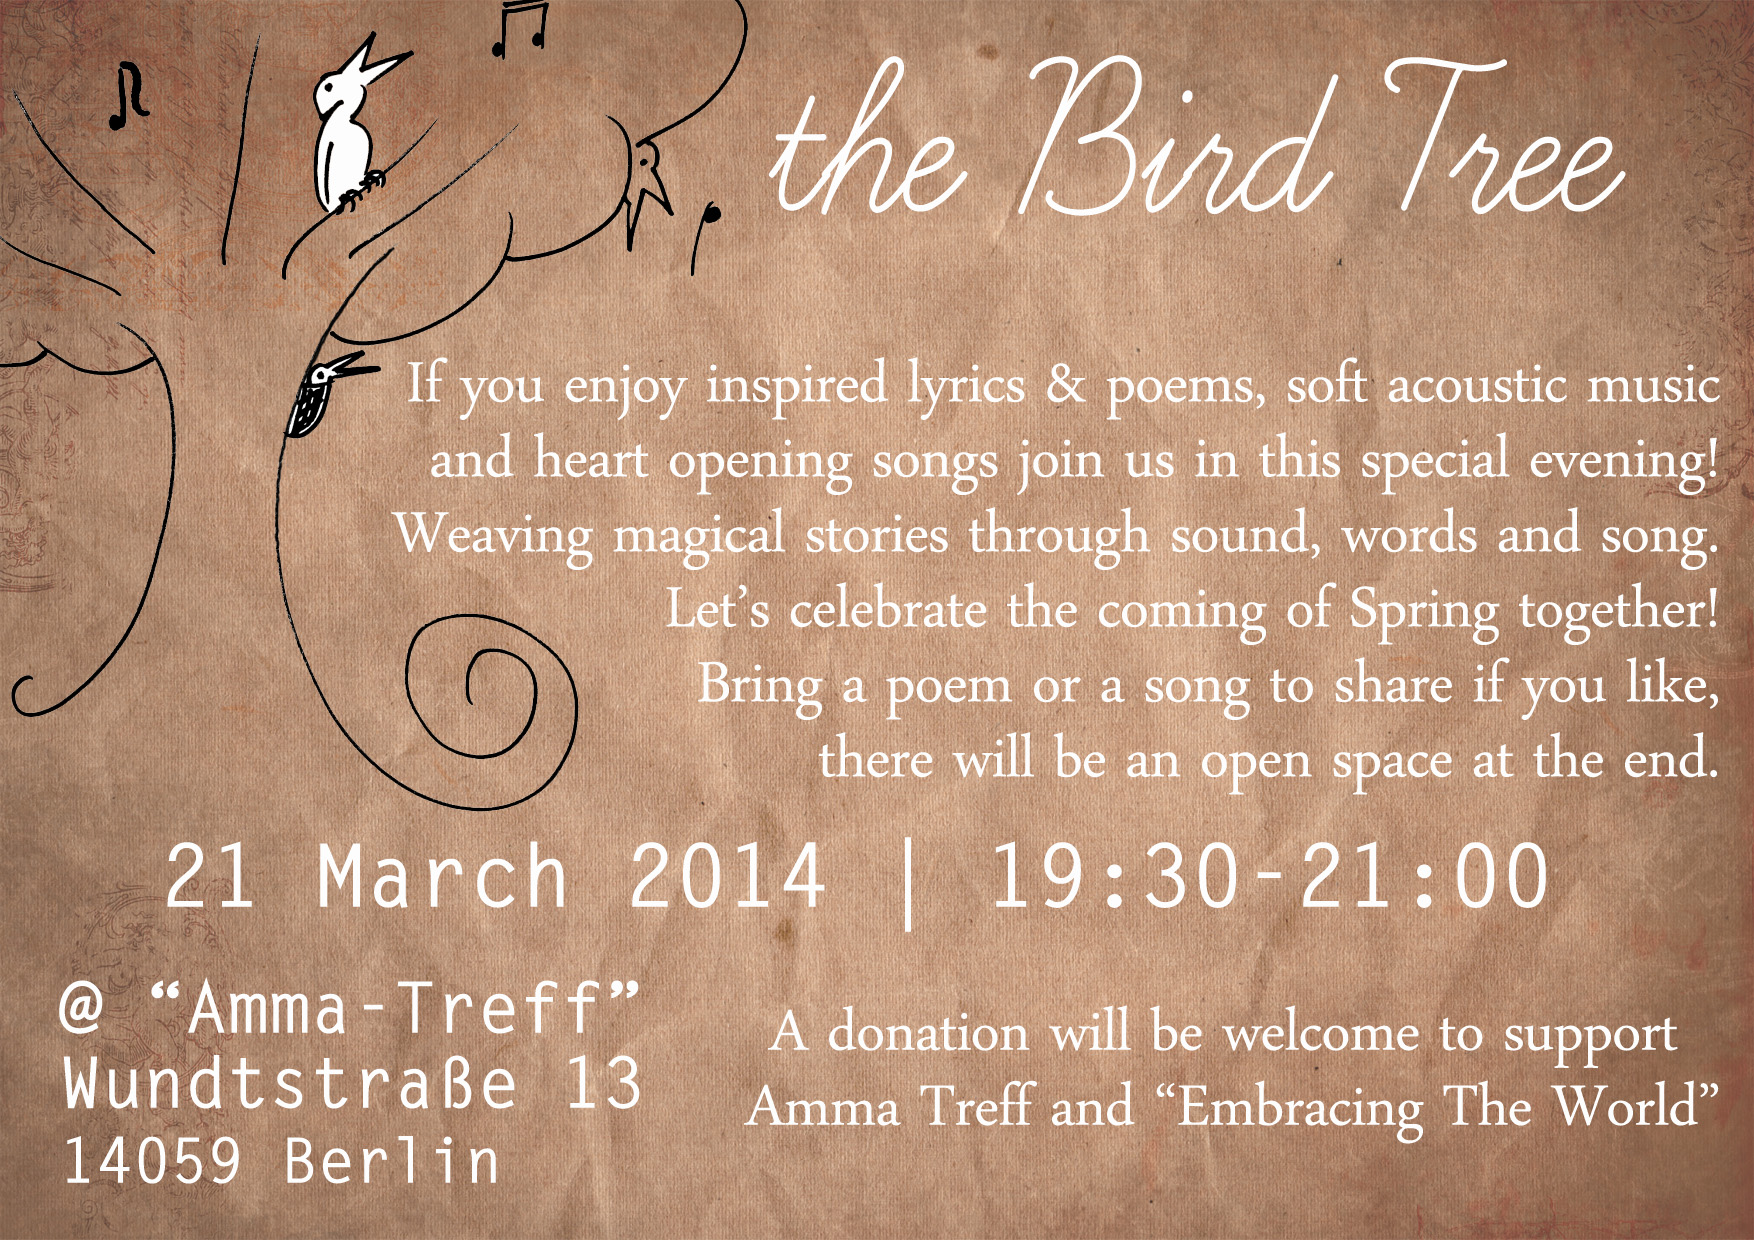 The BirdTree - poems, sotries, songs to celebrate spring | ARTCONNECT